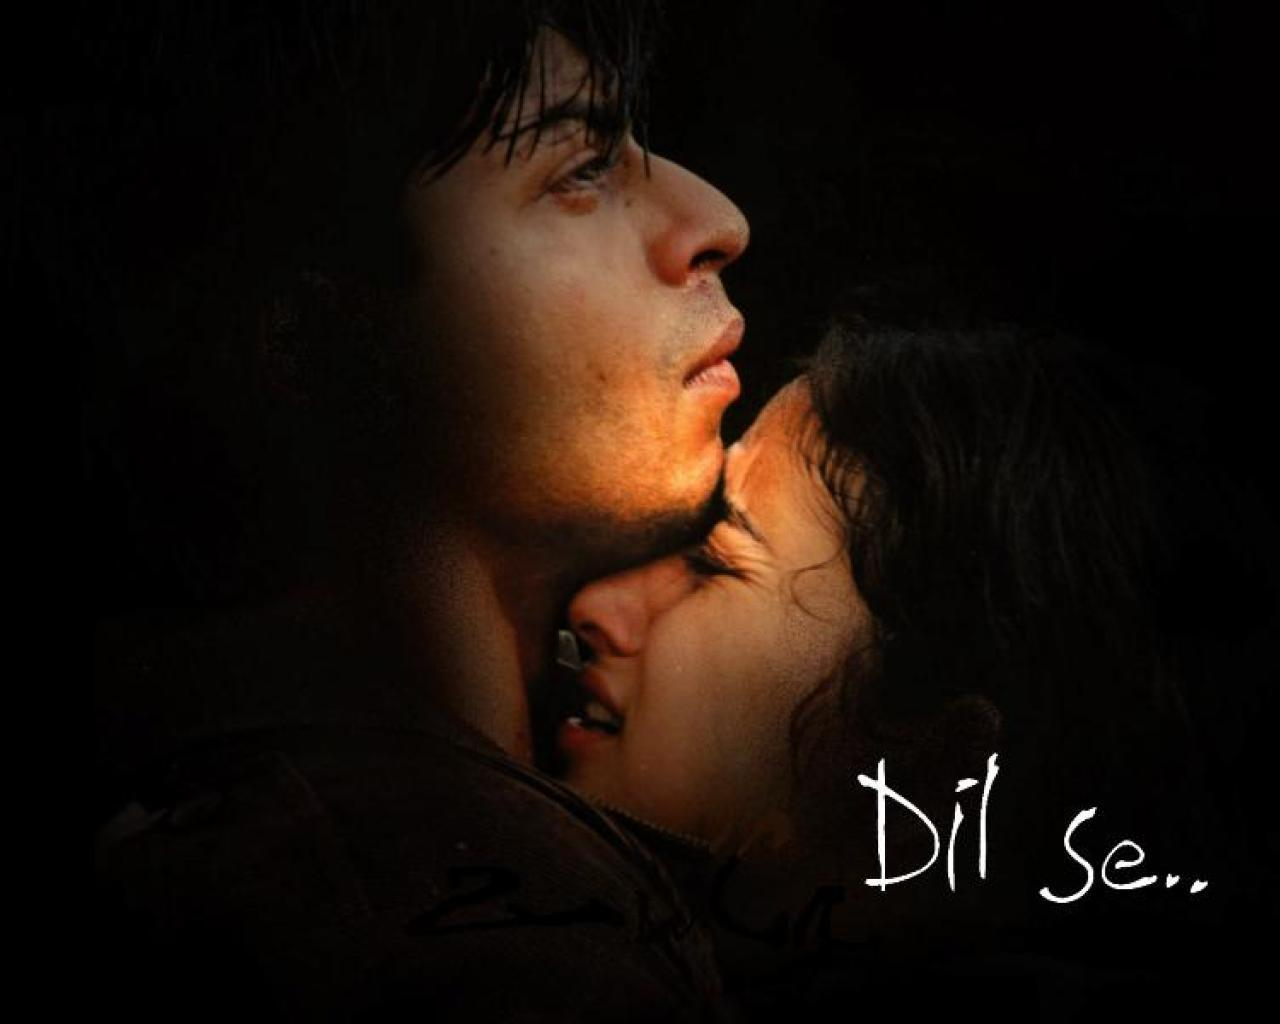 dil se shahrukh khan - photo #16